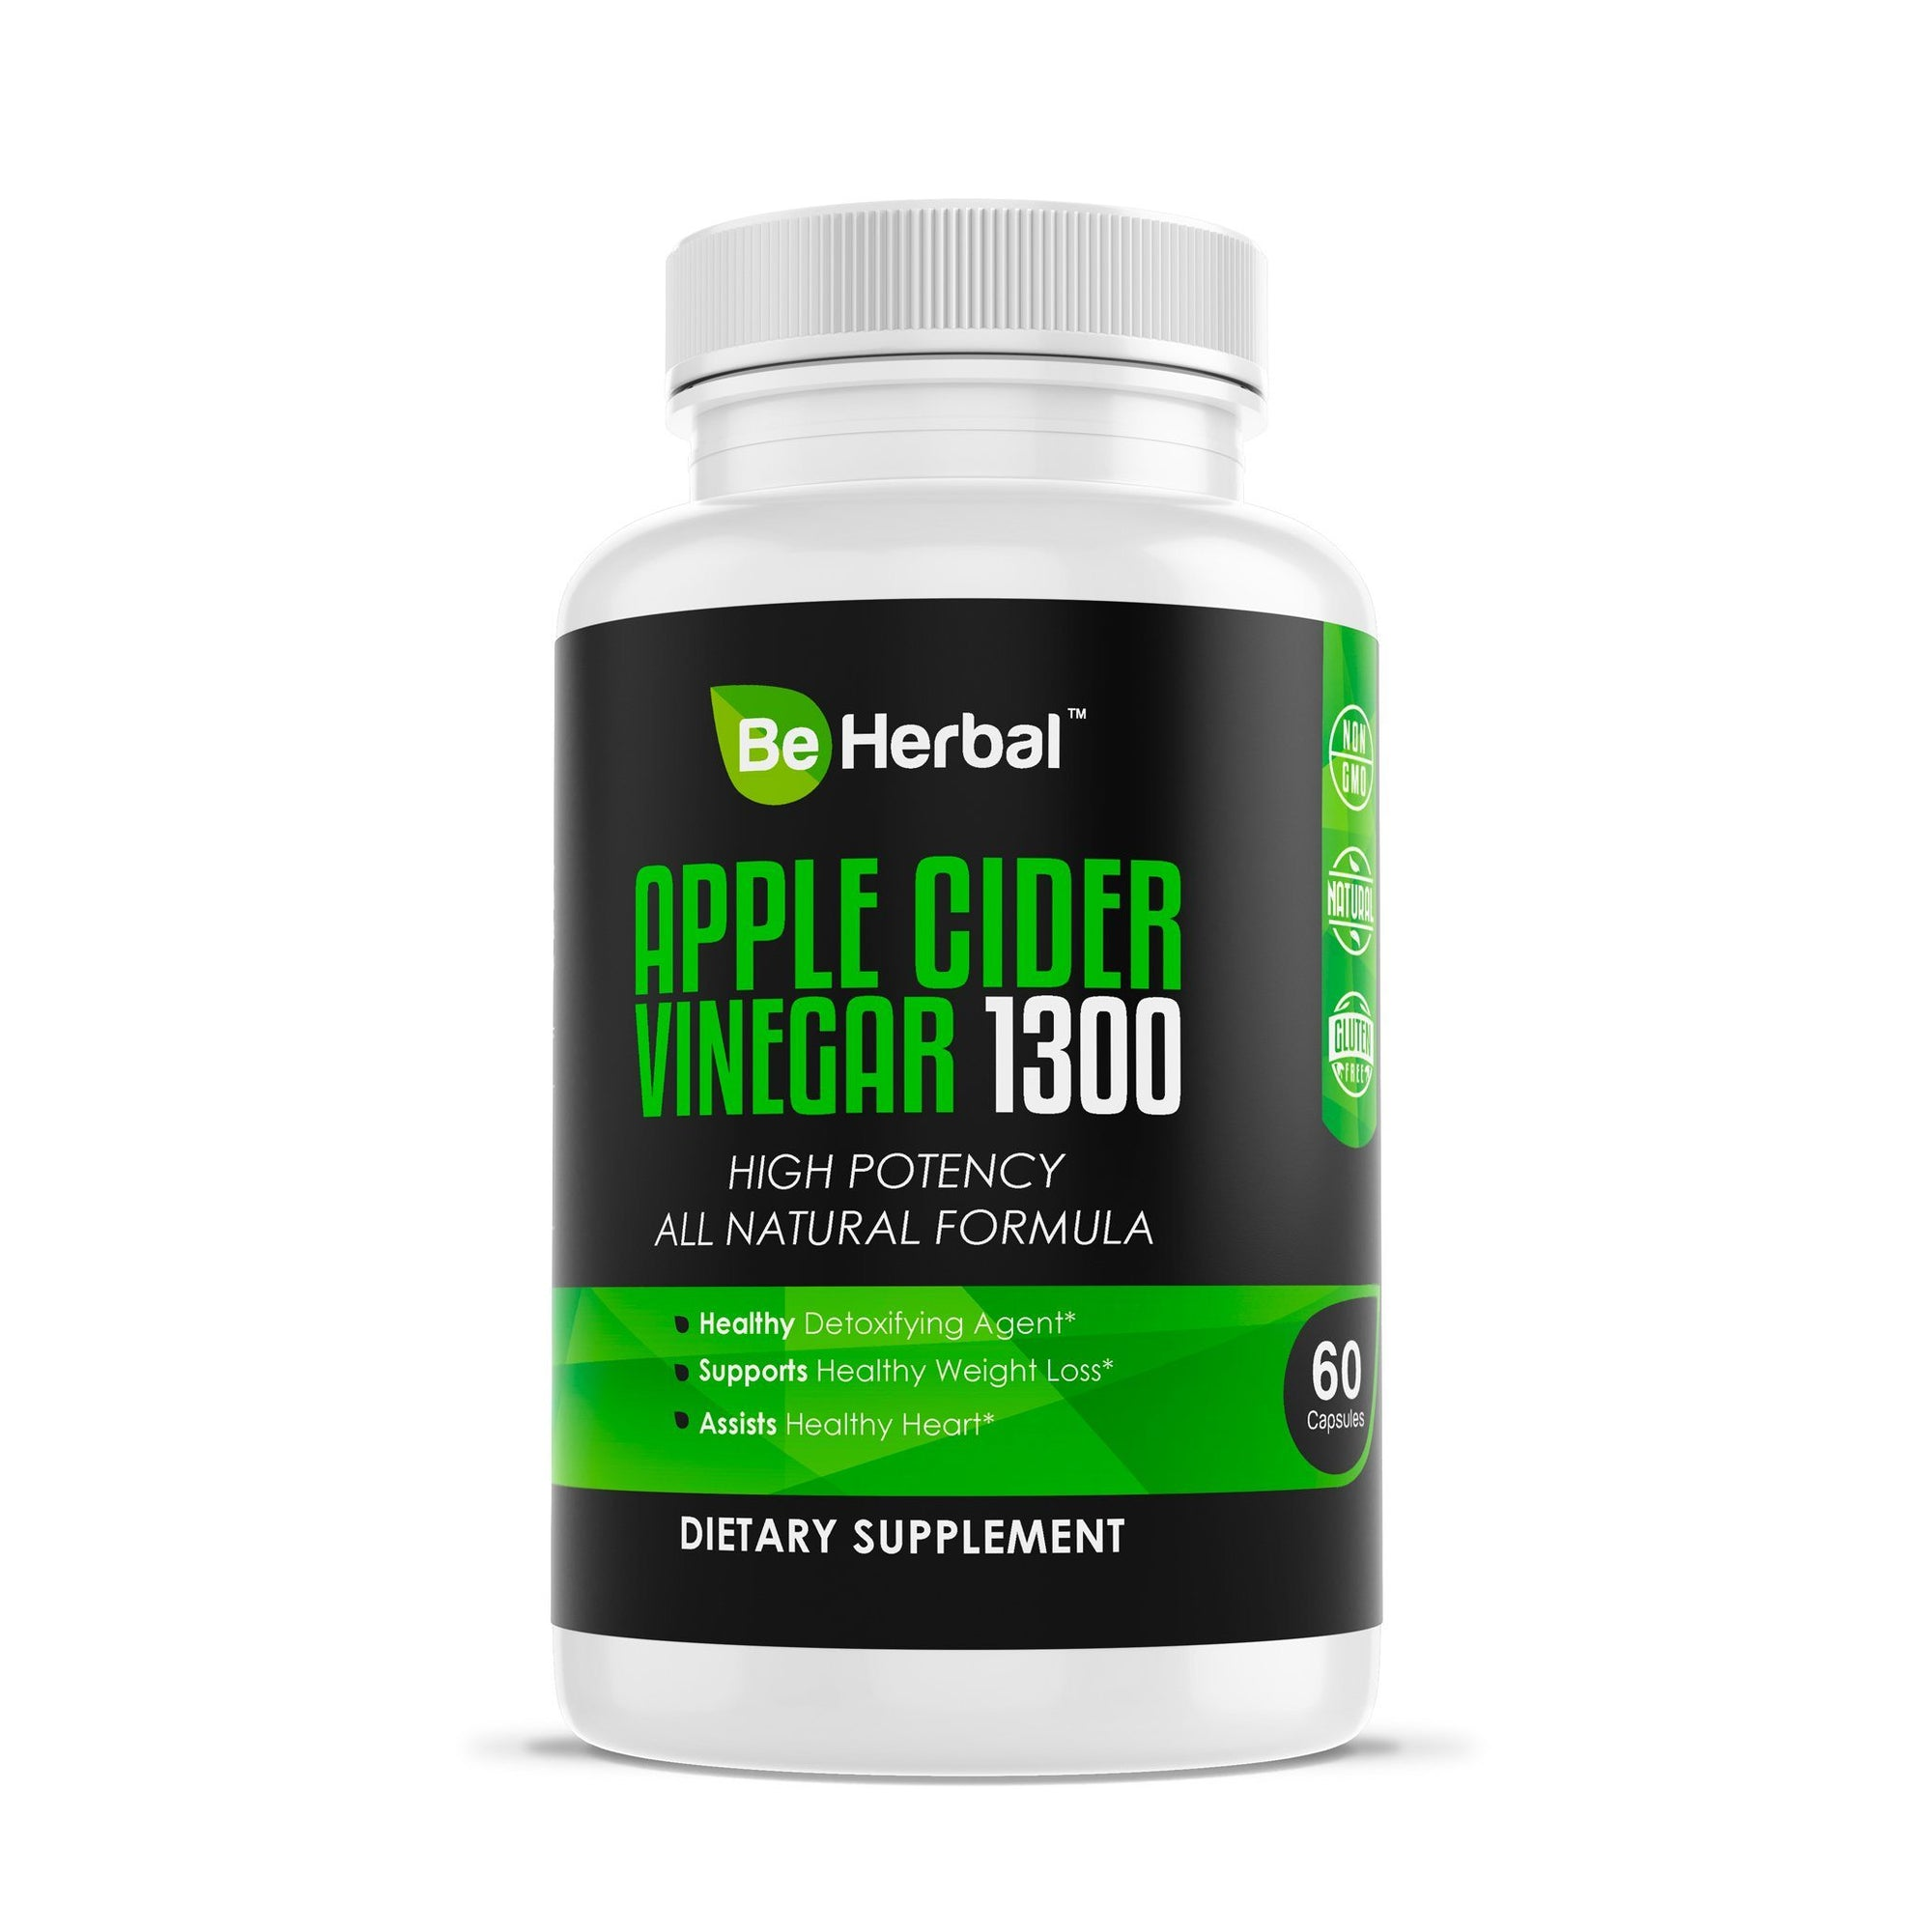 Apple Cider Vinegar 1300mg Herbal Supplements Be Herbal®